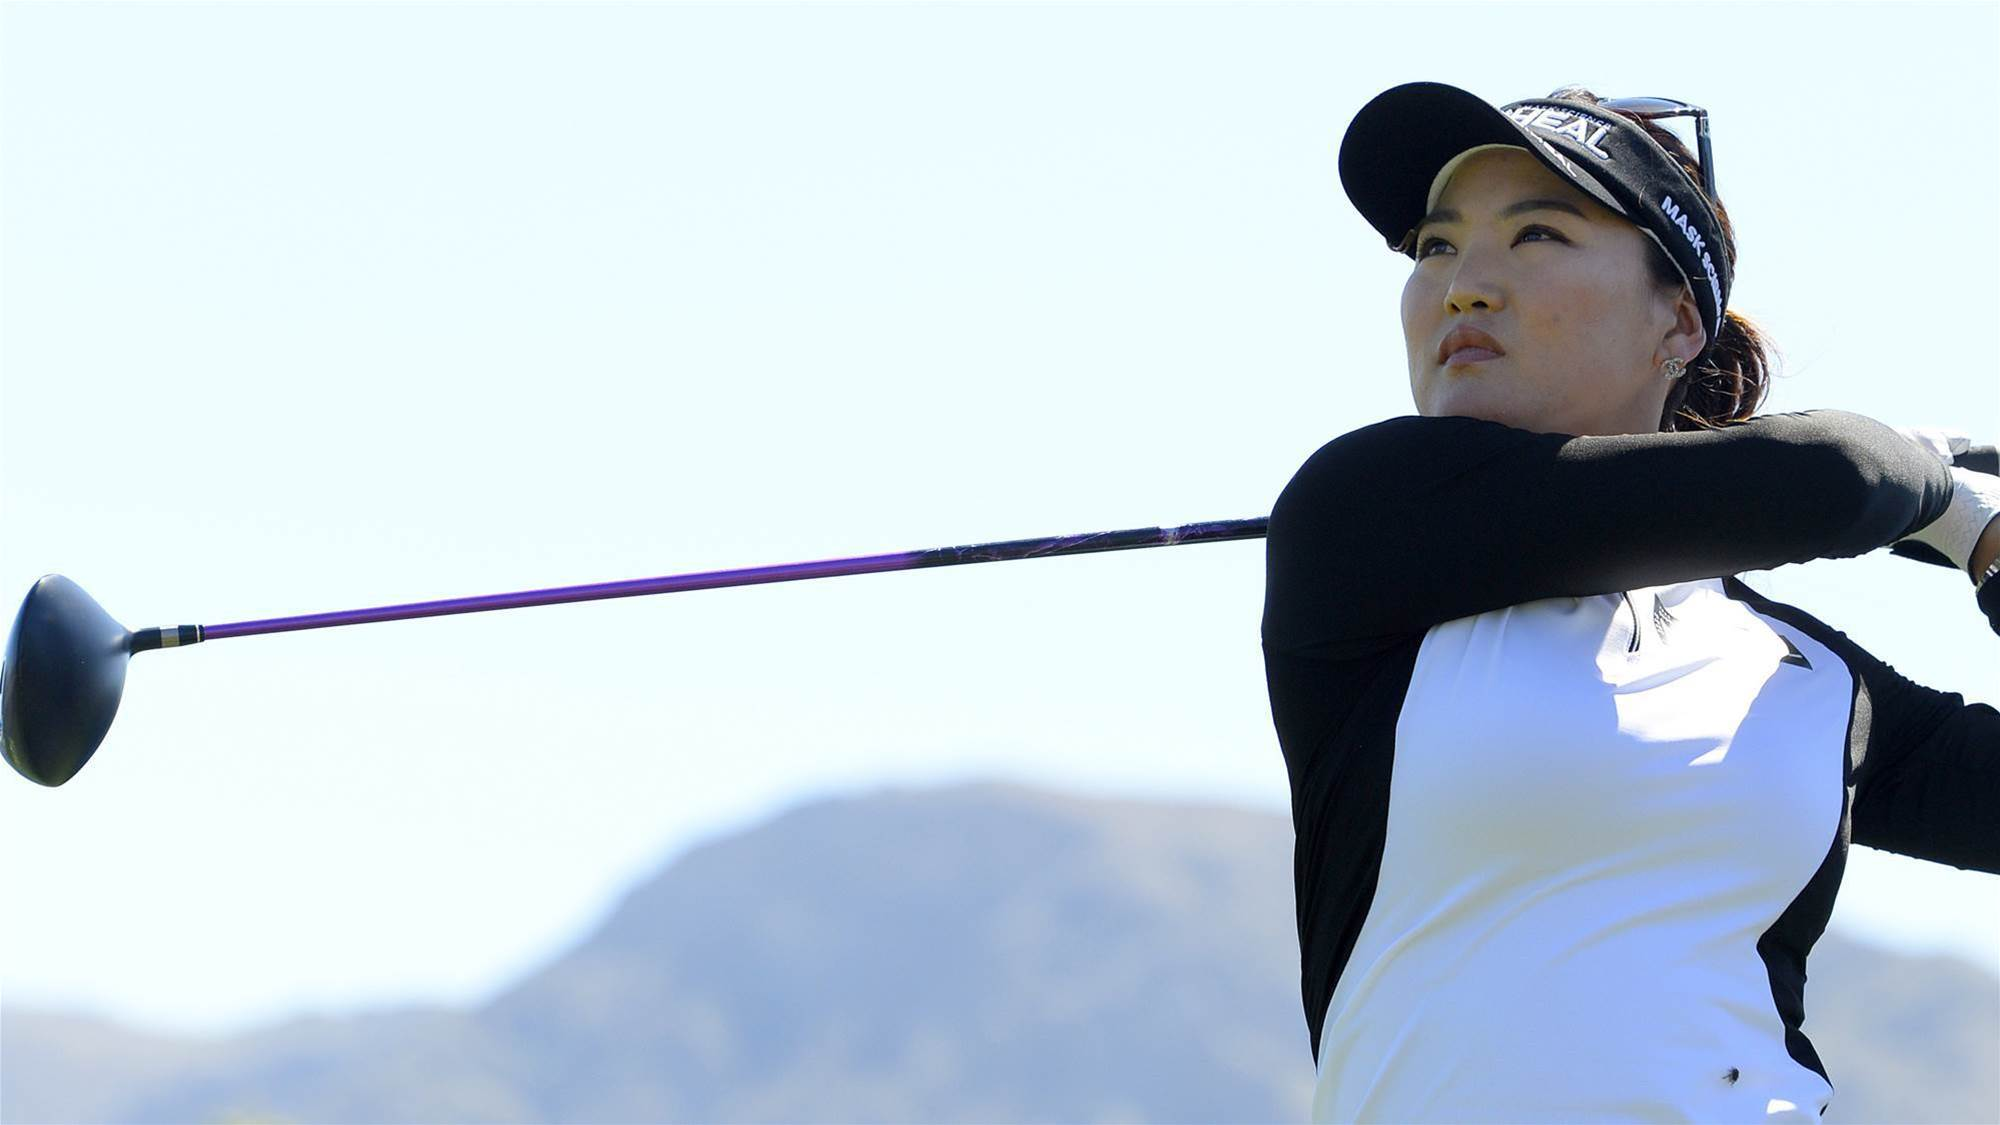 LPGA: Ryu snatches controversial ANA title from Thompson